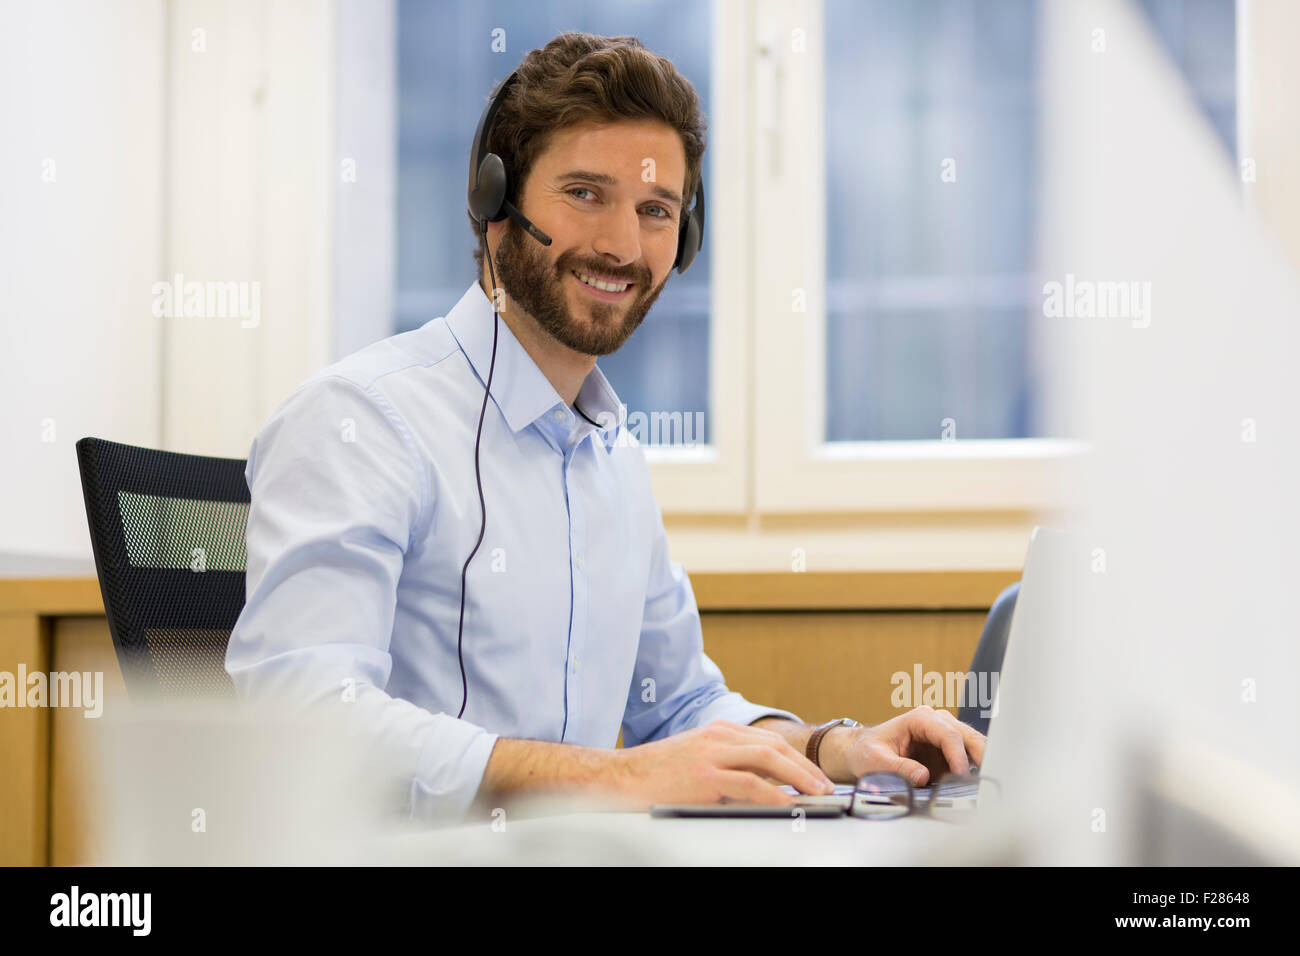 Smiling man wearing headset using laptop Banque D'Images